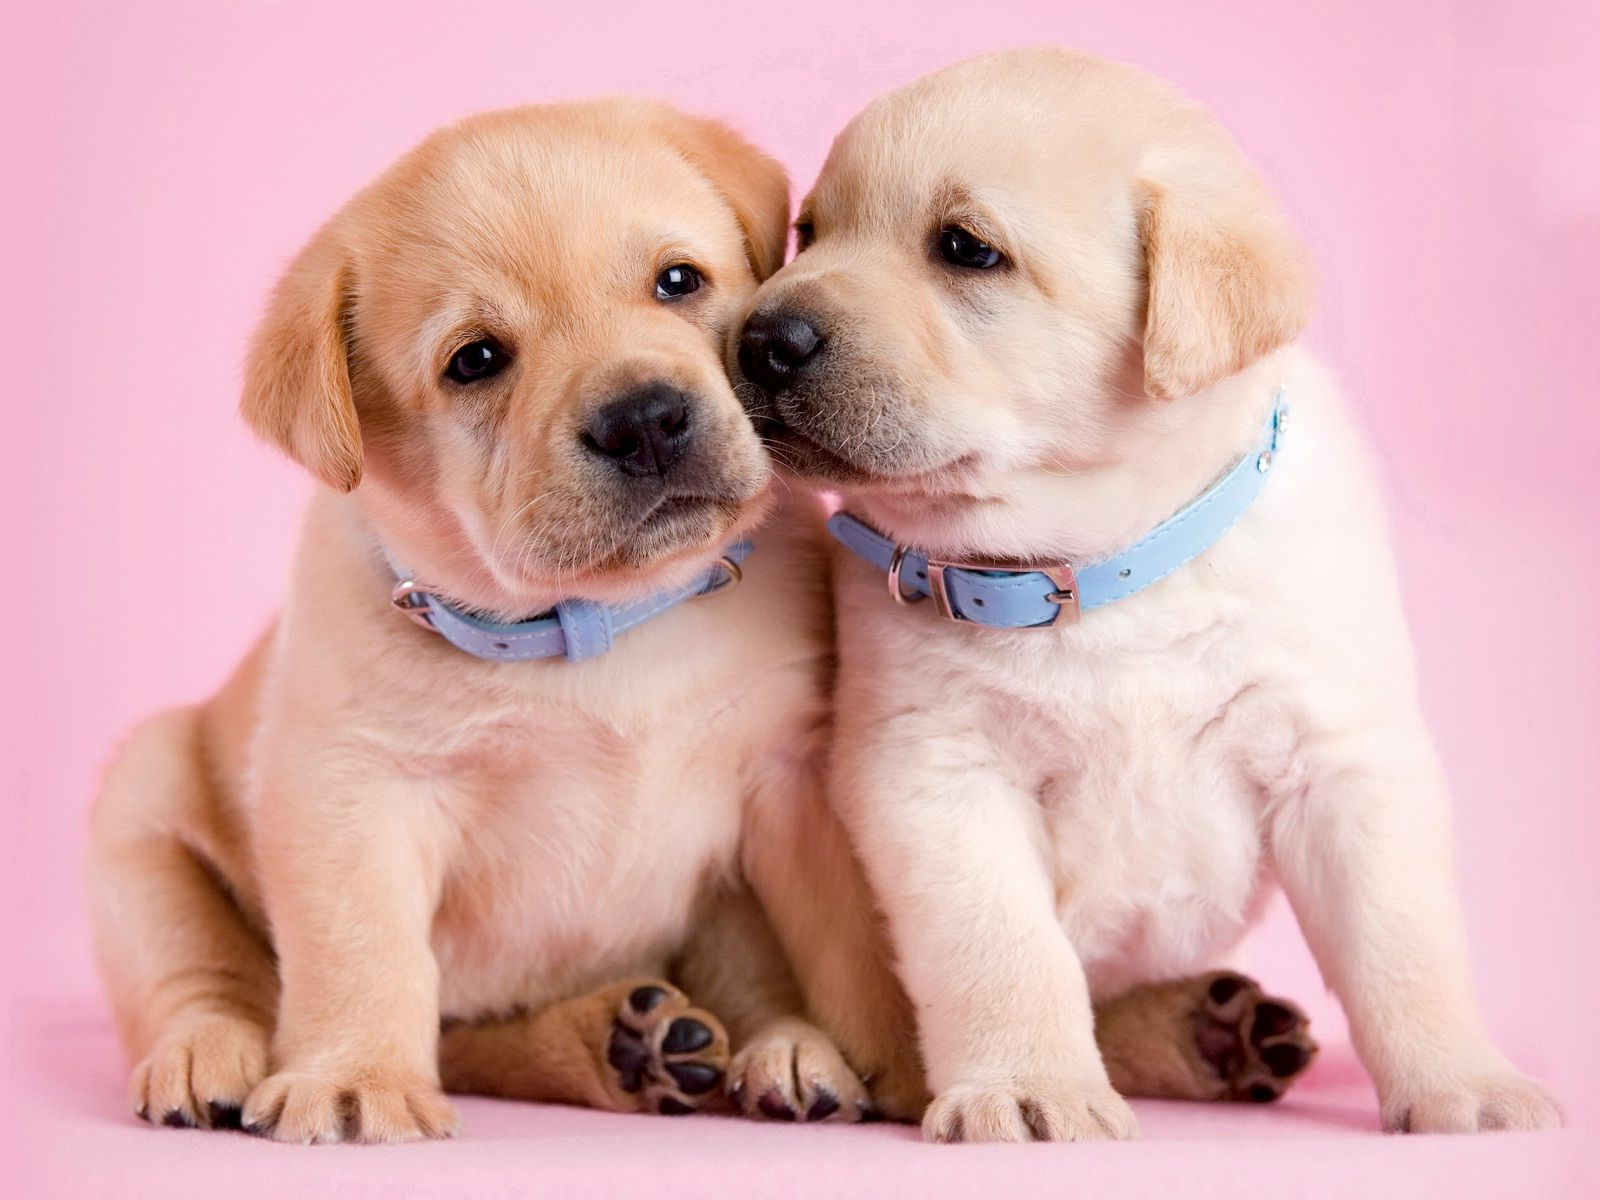 Cute Friendship Wallpapers For Facebook Friendship Day And Cute